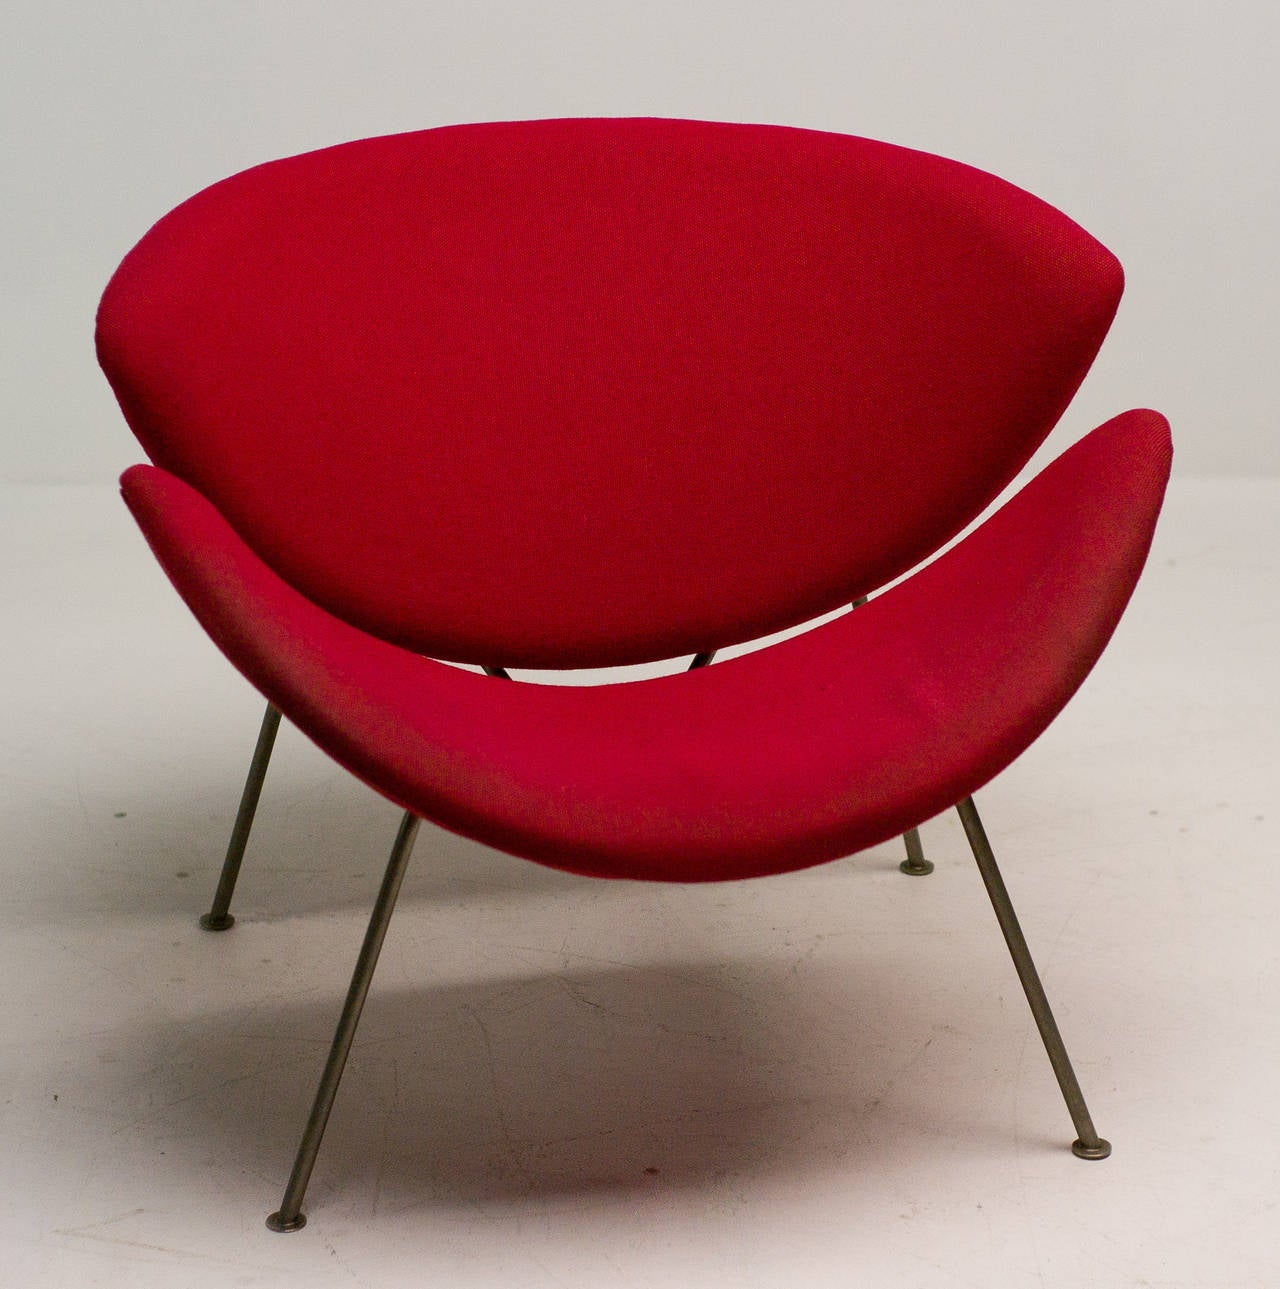 Original Early Orange Slice Chair By Pierre Paulin For Sale At 1stdibs